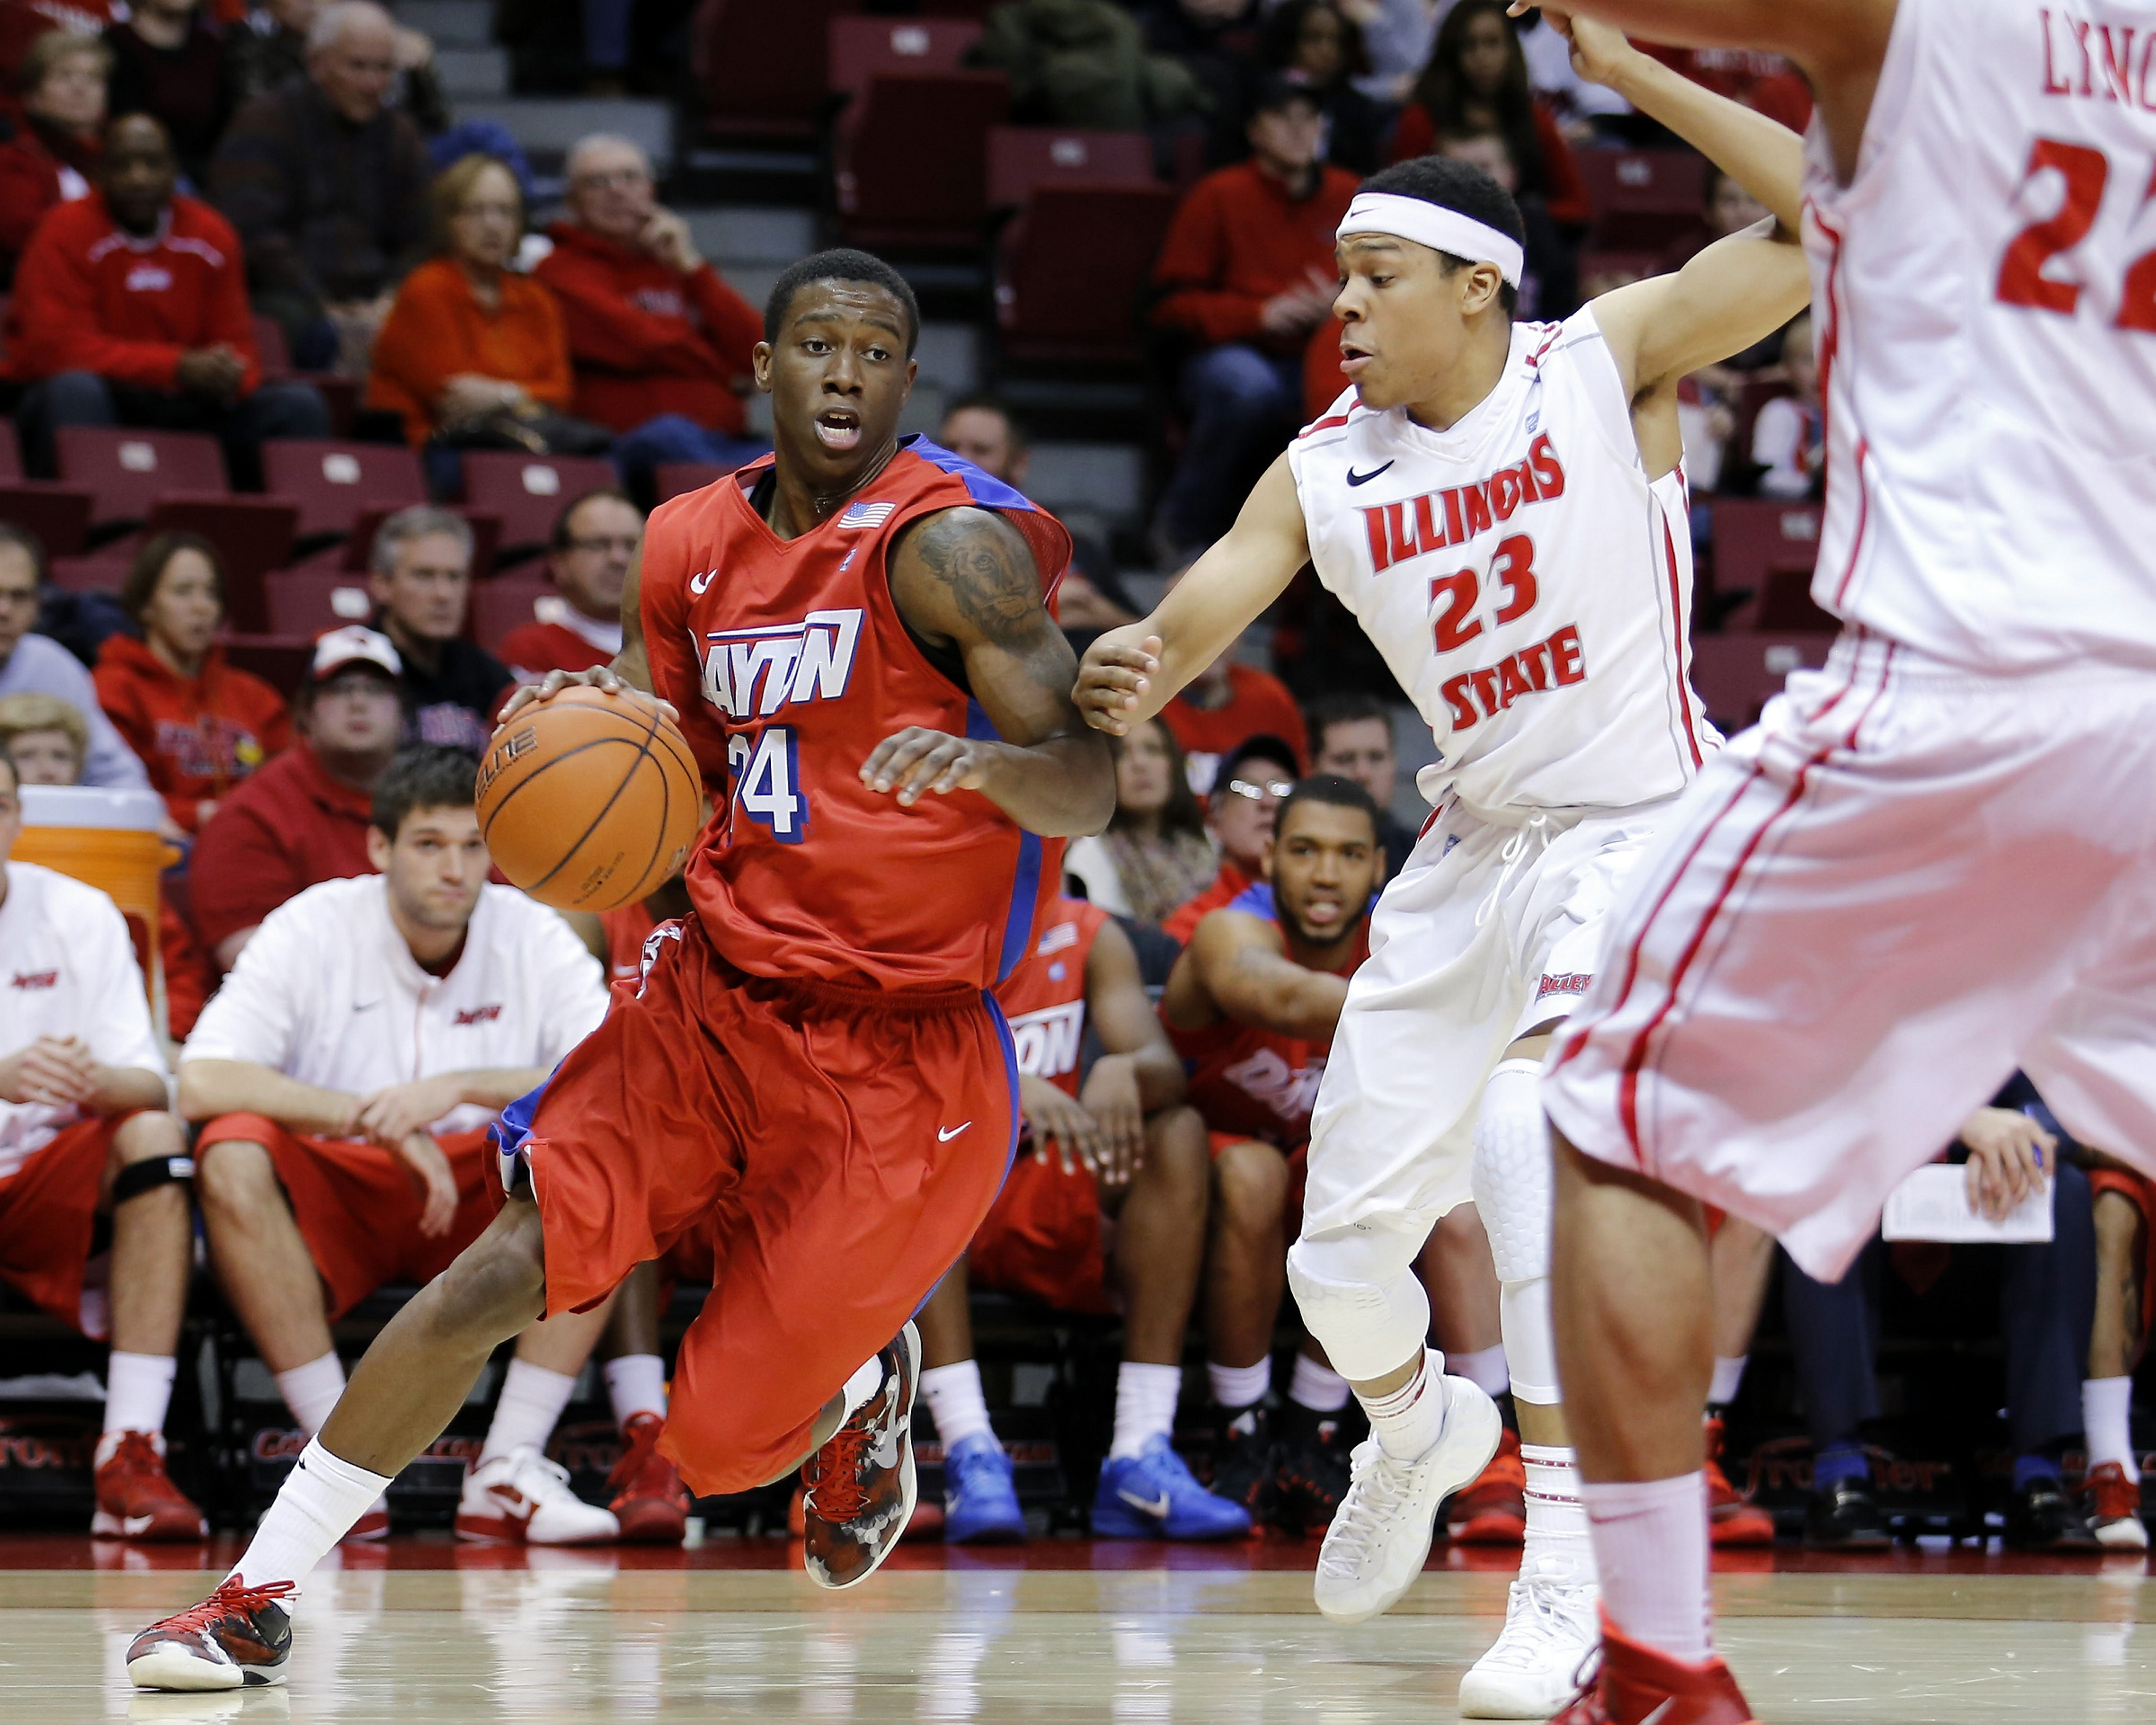 Dayton guard Jordan Sibert, driving to the basket against Illinois State, started his collegiate career at Ohio State.